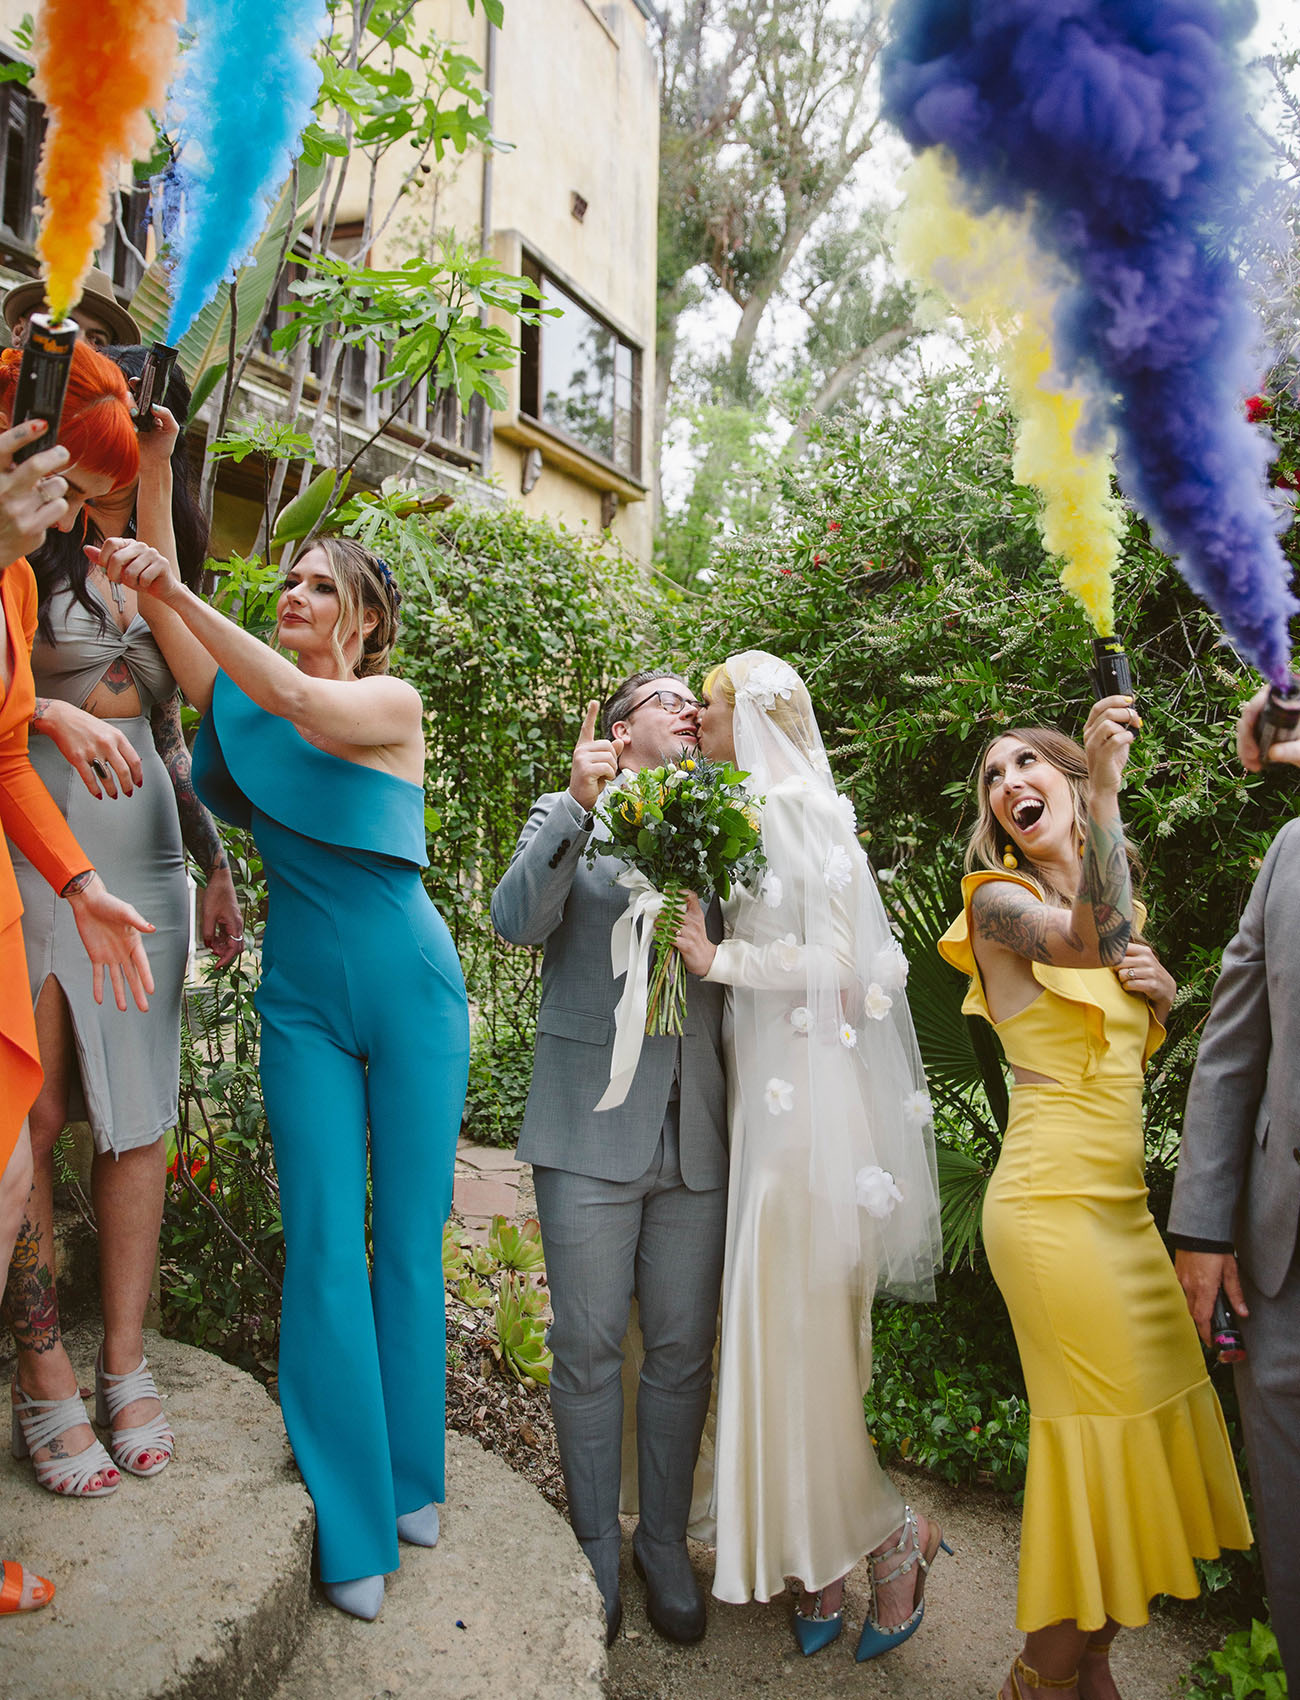 A Monochrome Rainbow Wedding at The Mountain Mermaid